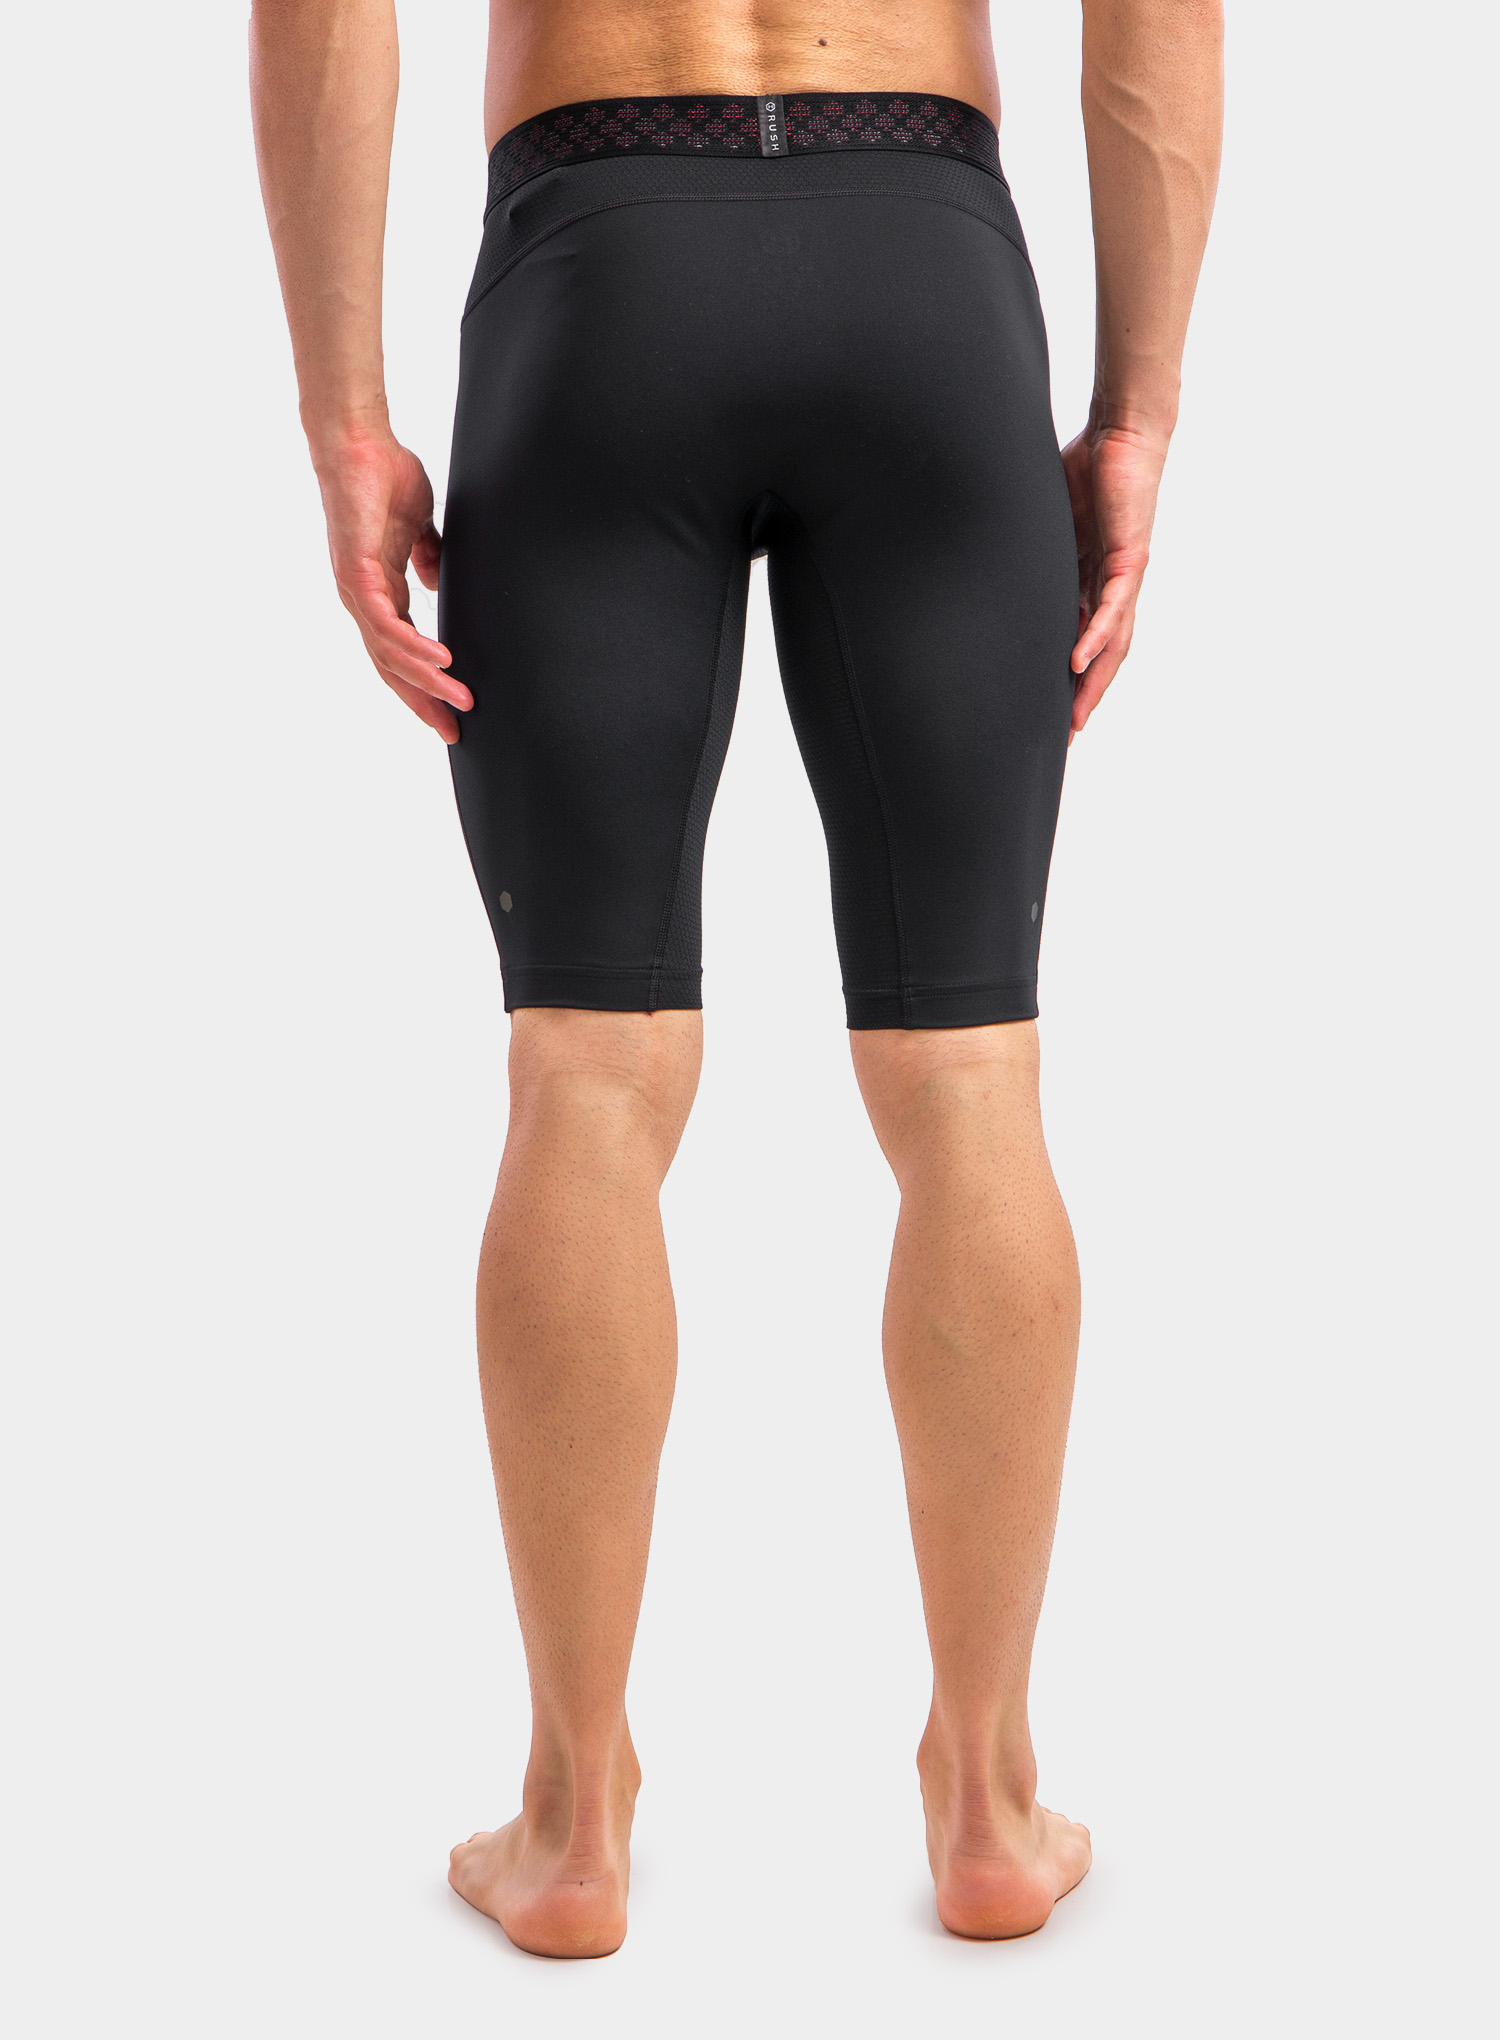 Spodenki Under Armour HG Rush 2.0 Long Shorts - black/black - zdjęcie nr. 5